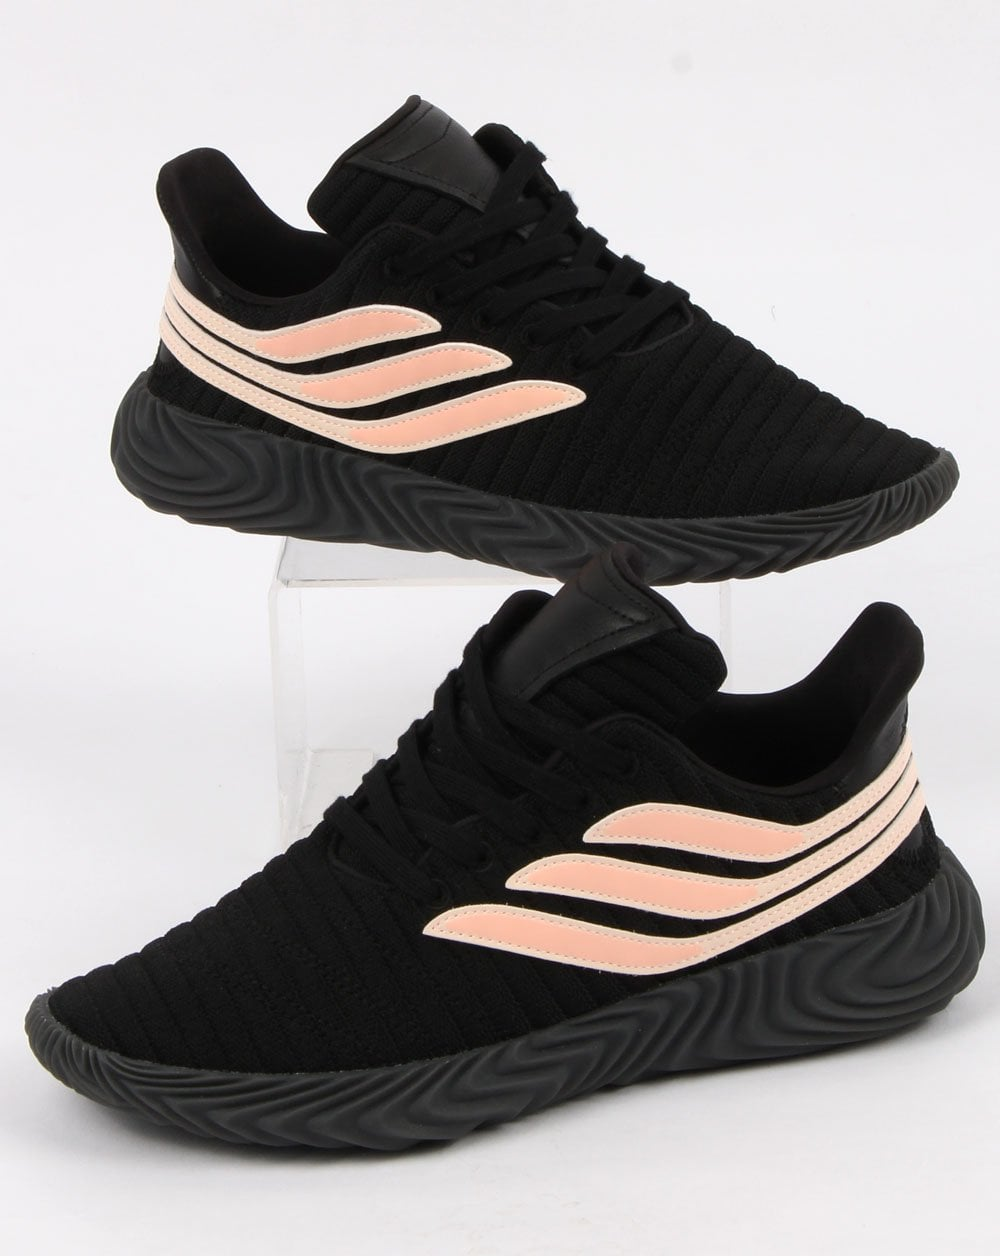 new product 4beaa 6d04e adidas Trainers Adidas Sobakov Trainers Black clear Orange